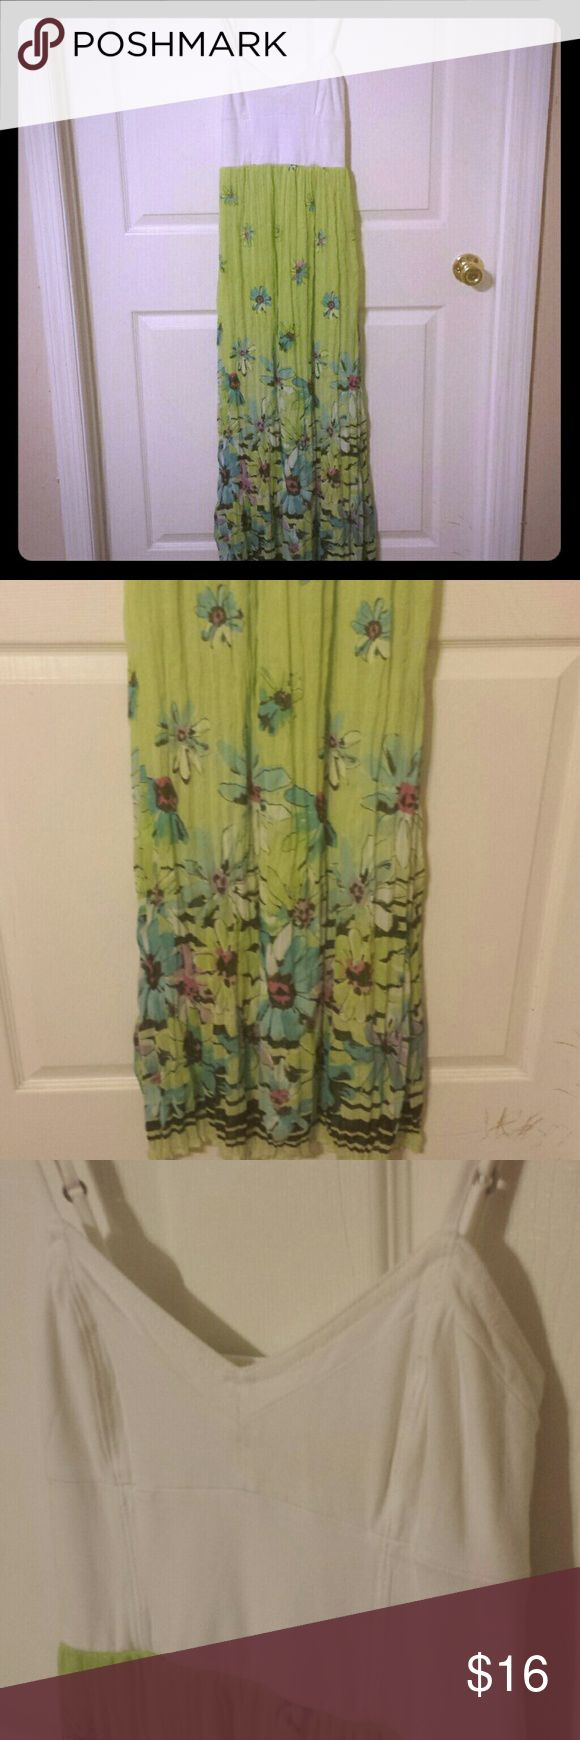 Maxi Dress Aeropostale, size small, maxi dress. Spaghetti straps. White top, green, floral skirt. Back stretches. Some slight signs of wash wear on the top portion. Aeropostale Dresses Maxi